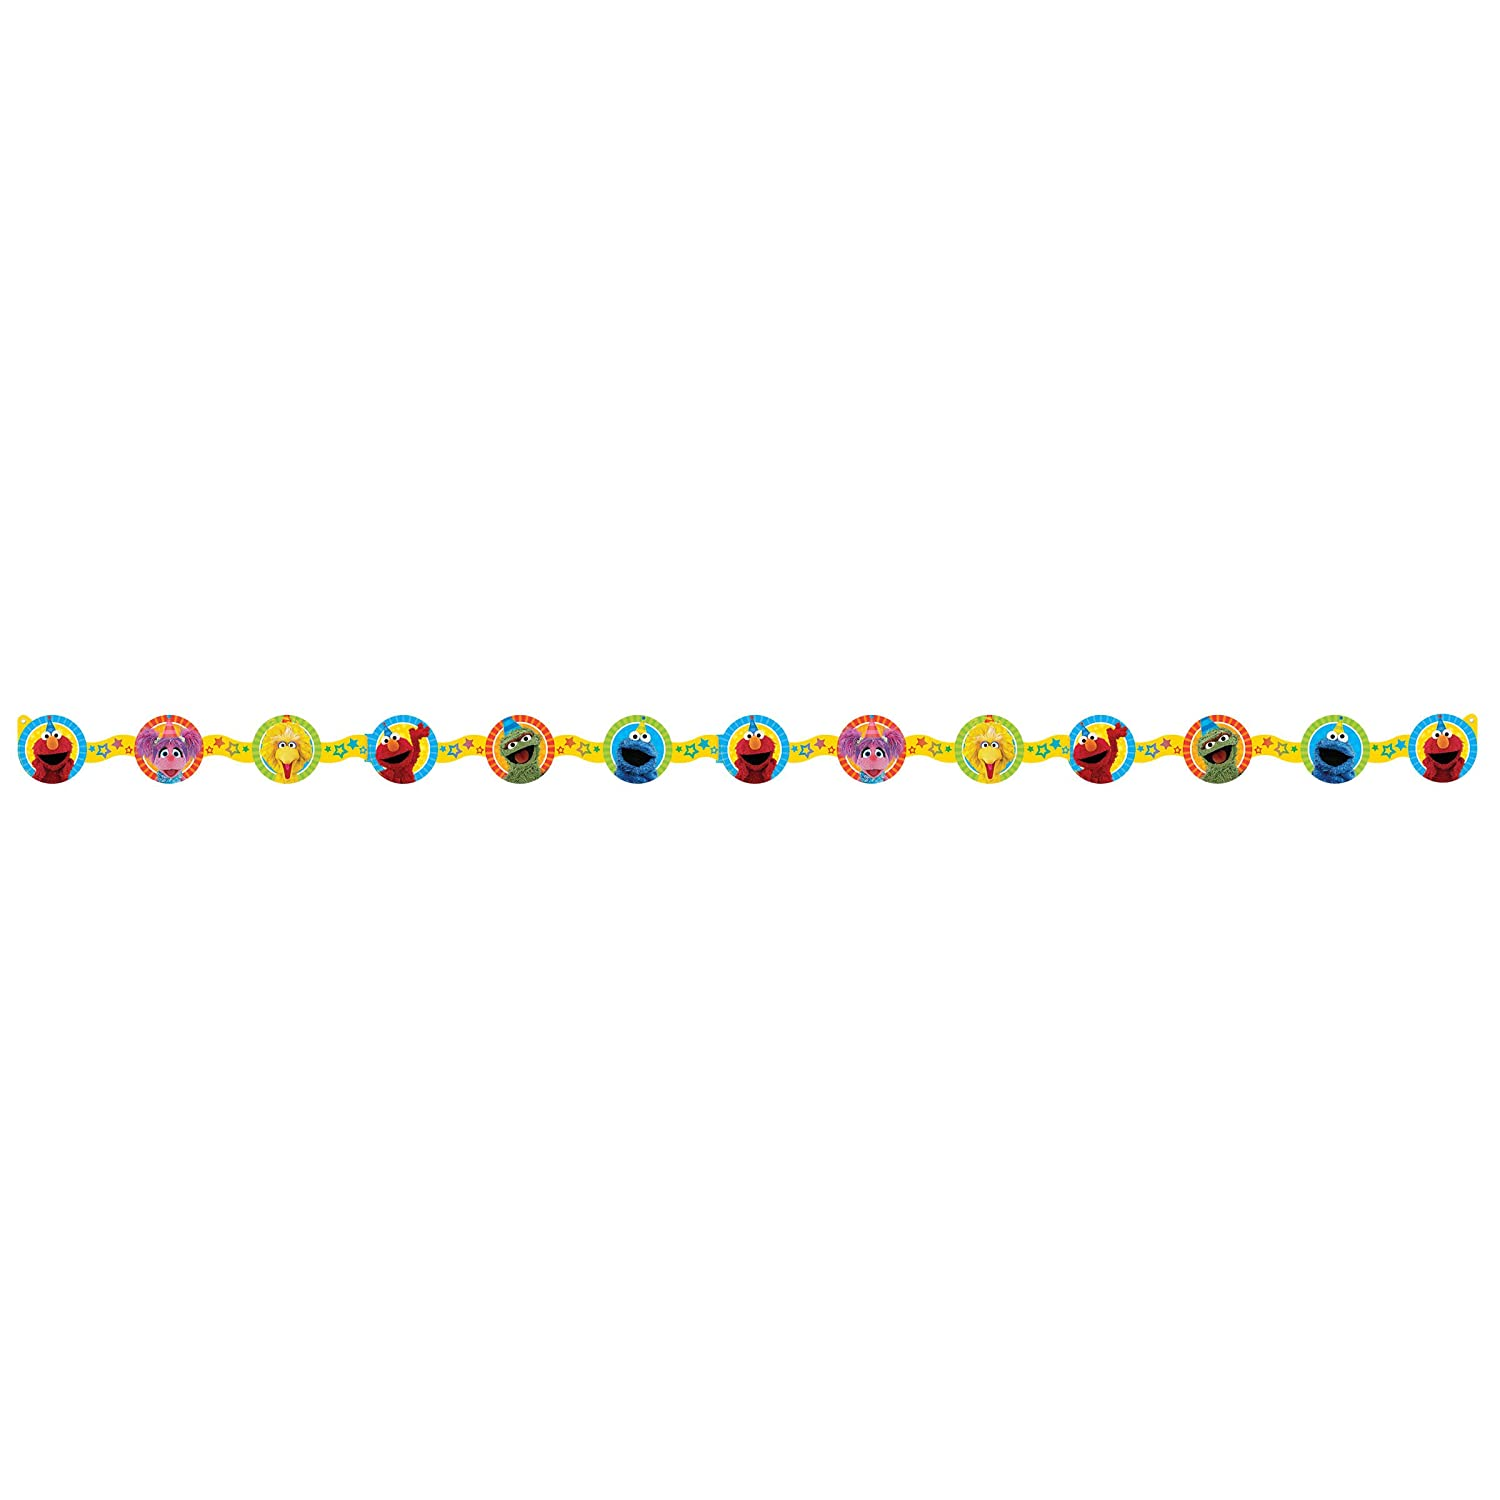 Amscan Die Cut Paper Garland | Sesame Street Collection | Party Accessory